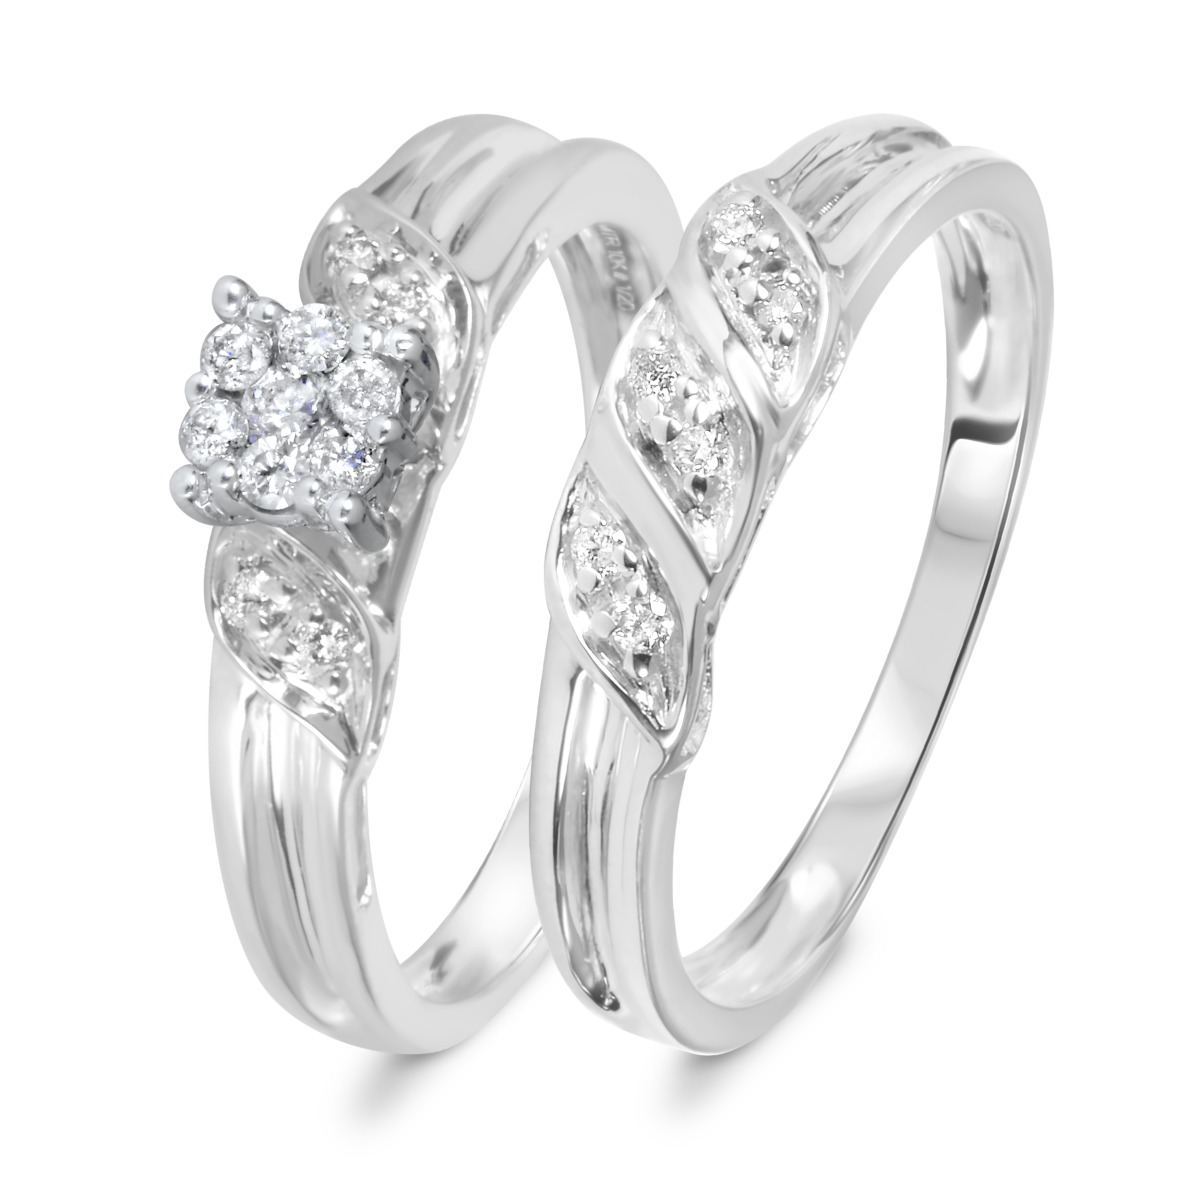 1/7 Carat Diamond Bridal Wedding Ring Set 10K White Gold